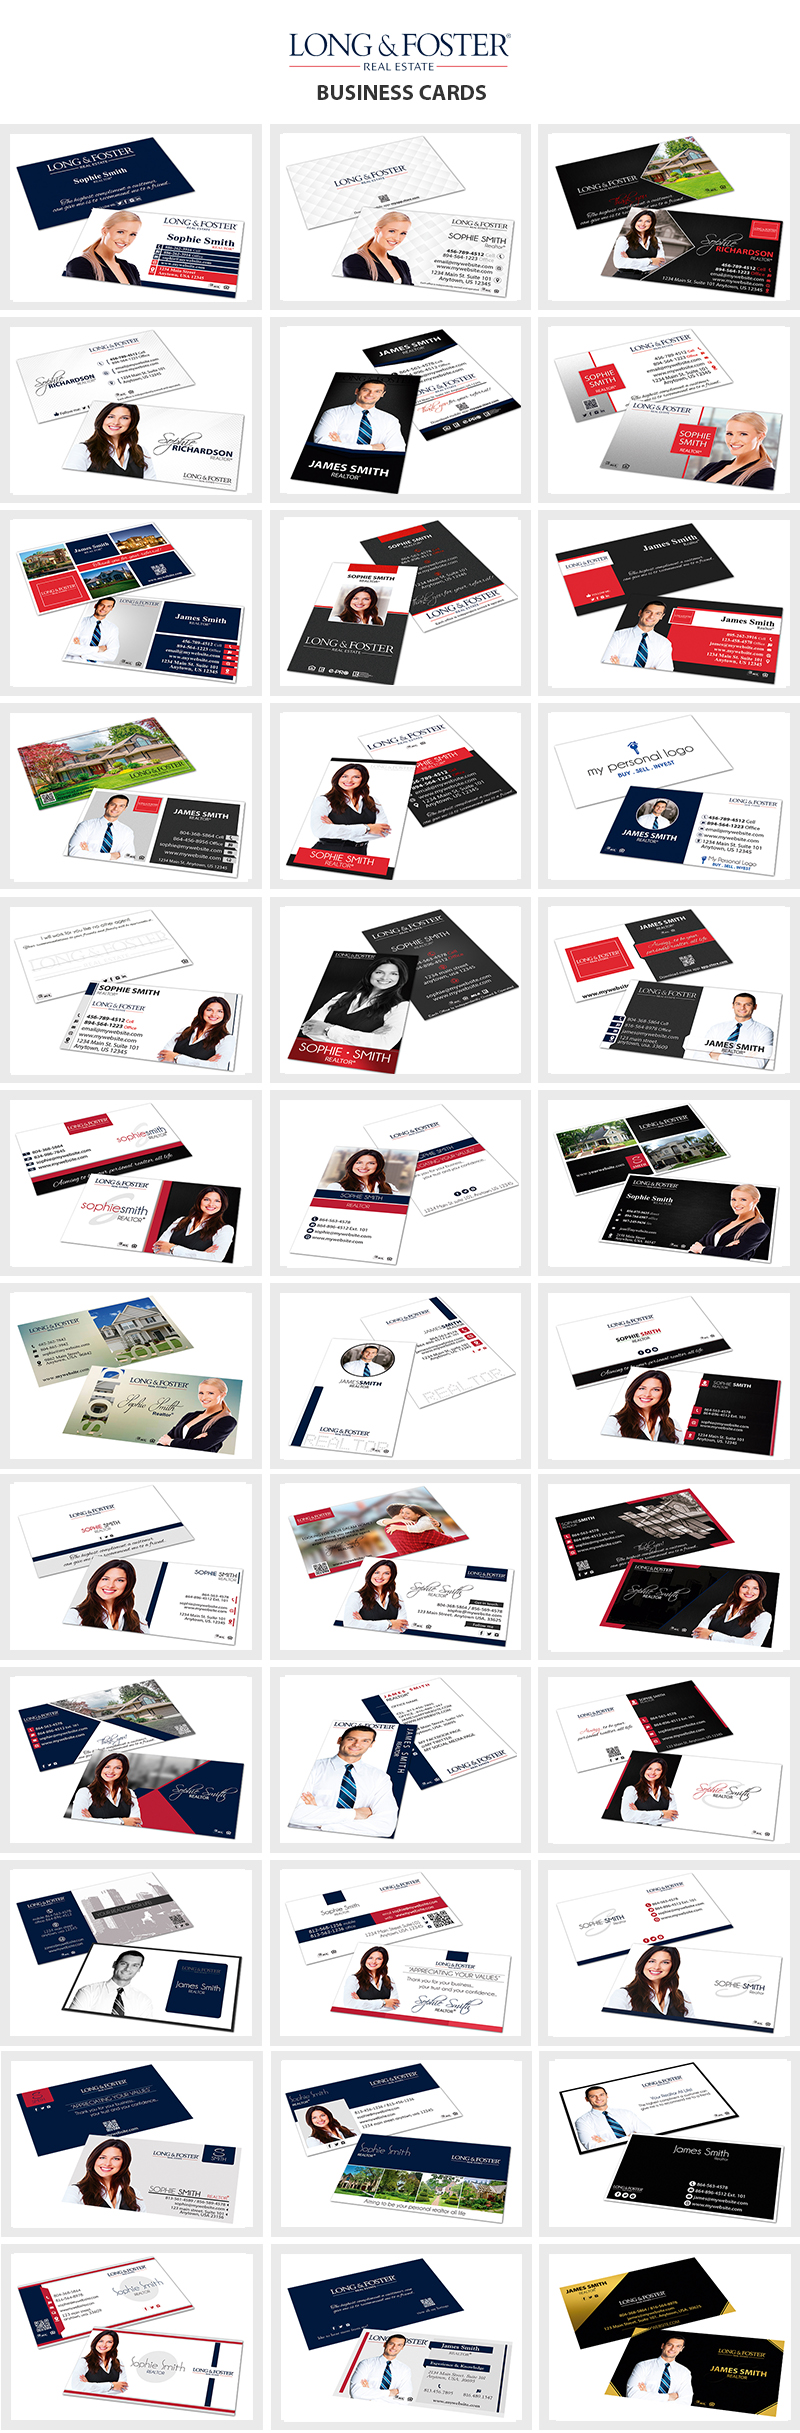 Long and Foster Real Estate Business Cards, Long and Foster Realtor Business Cards, Long and Foster Agent Business Cards, Long and Foster Broker Business Cards, Long and Foster Office Business Cards